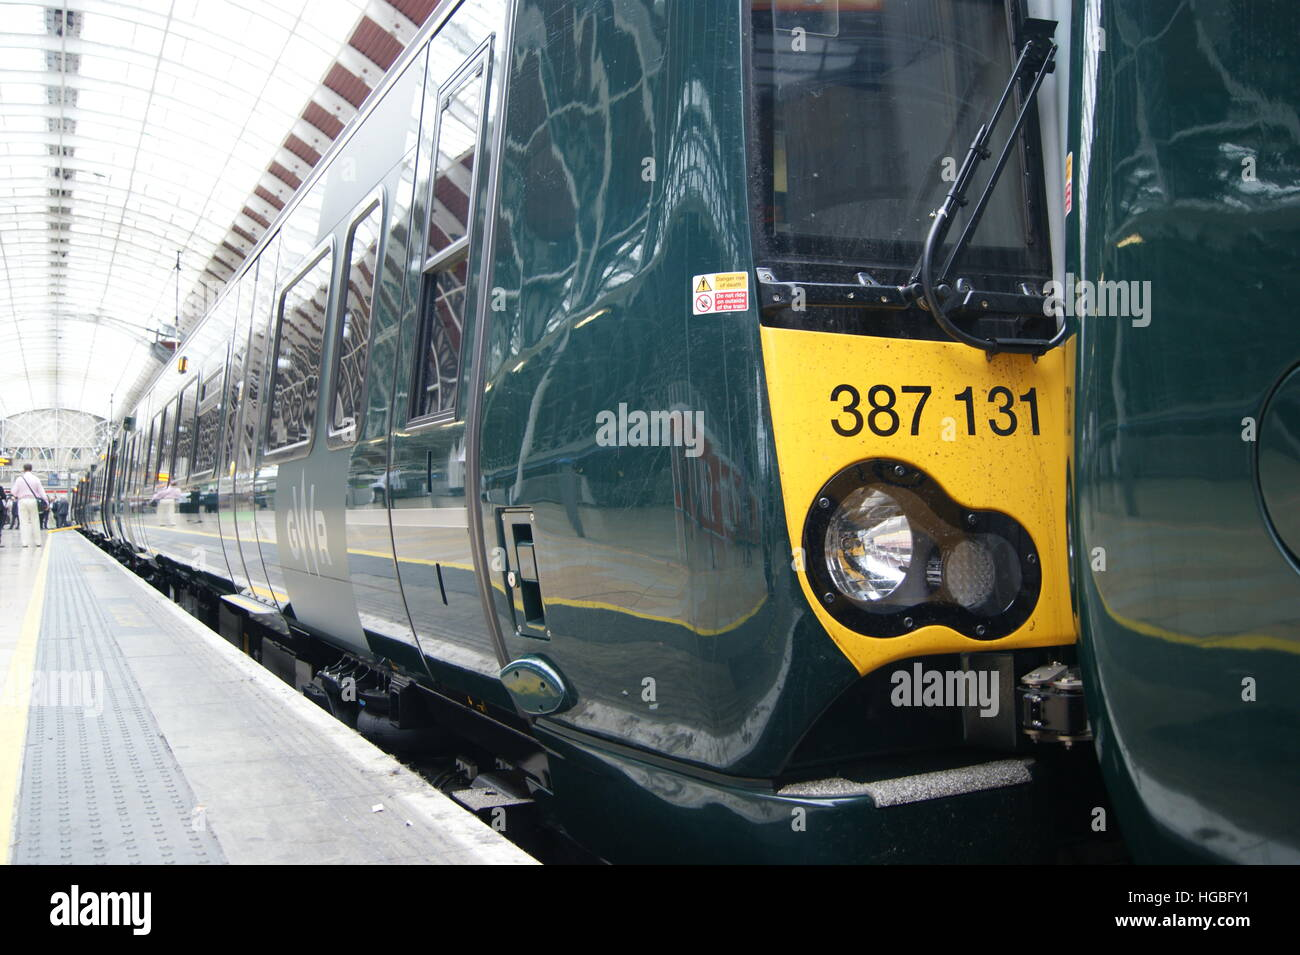 New Electrostar units No. 387131 and 387132 sit in London Paddington on 2nd September 2016 on display. Stock Photo